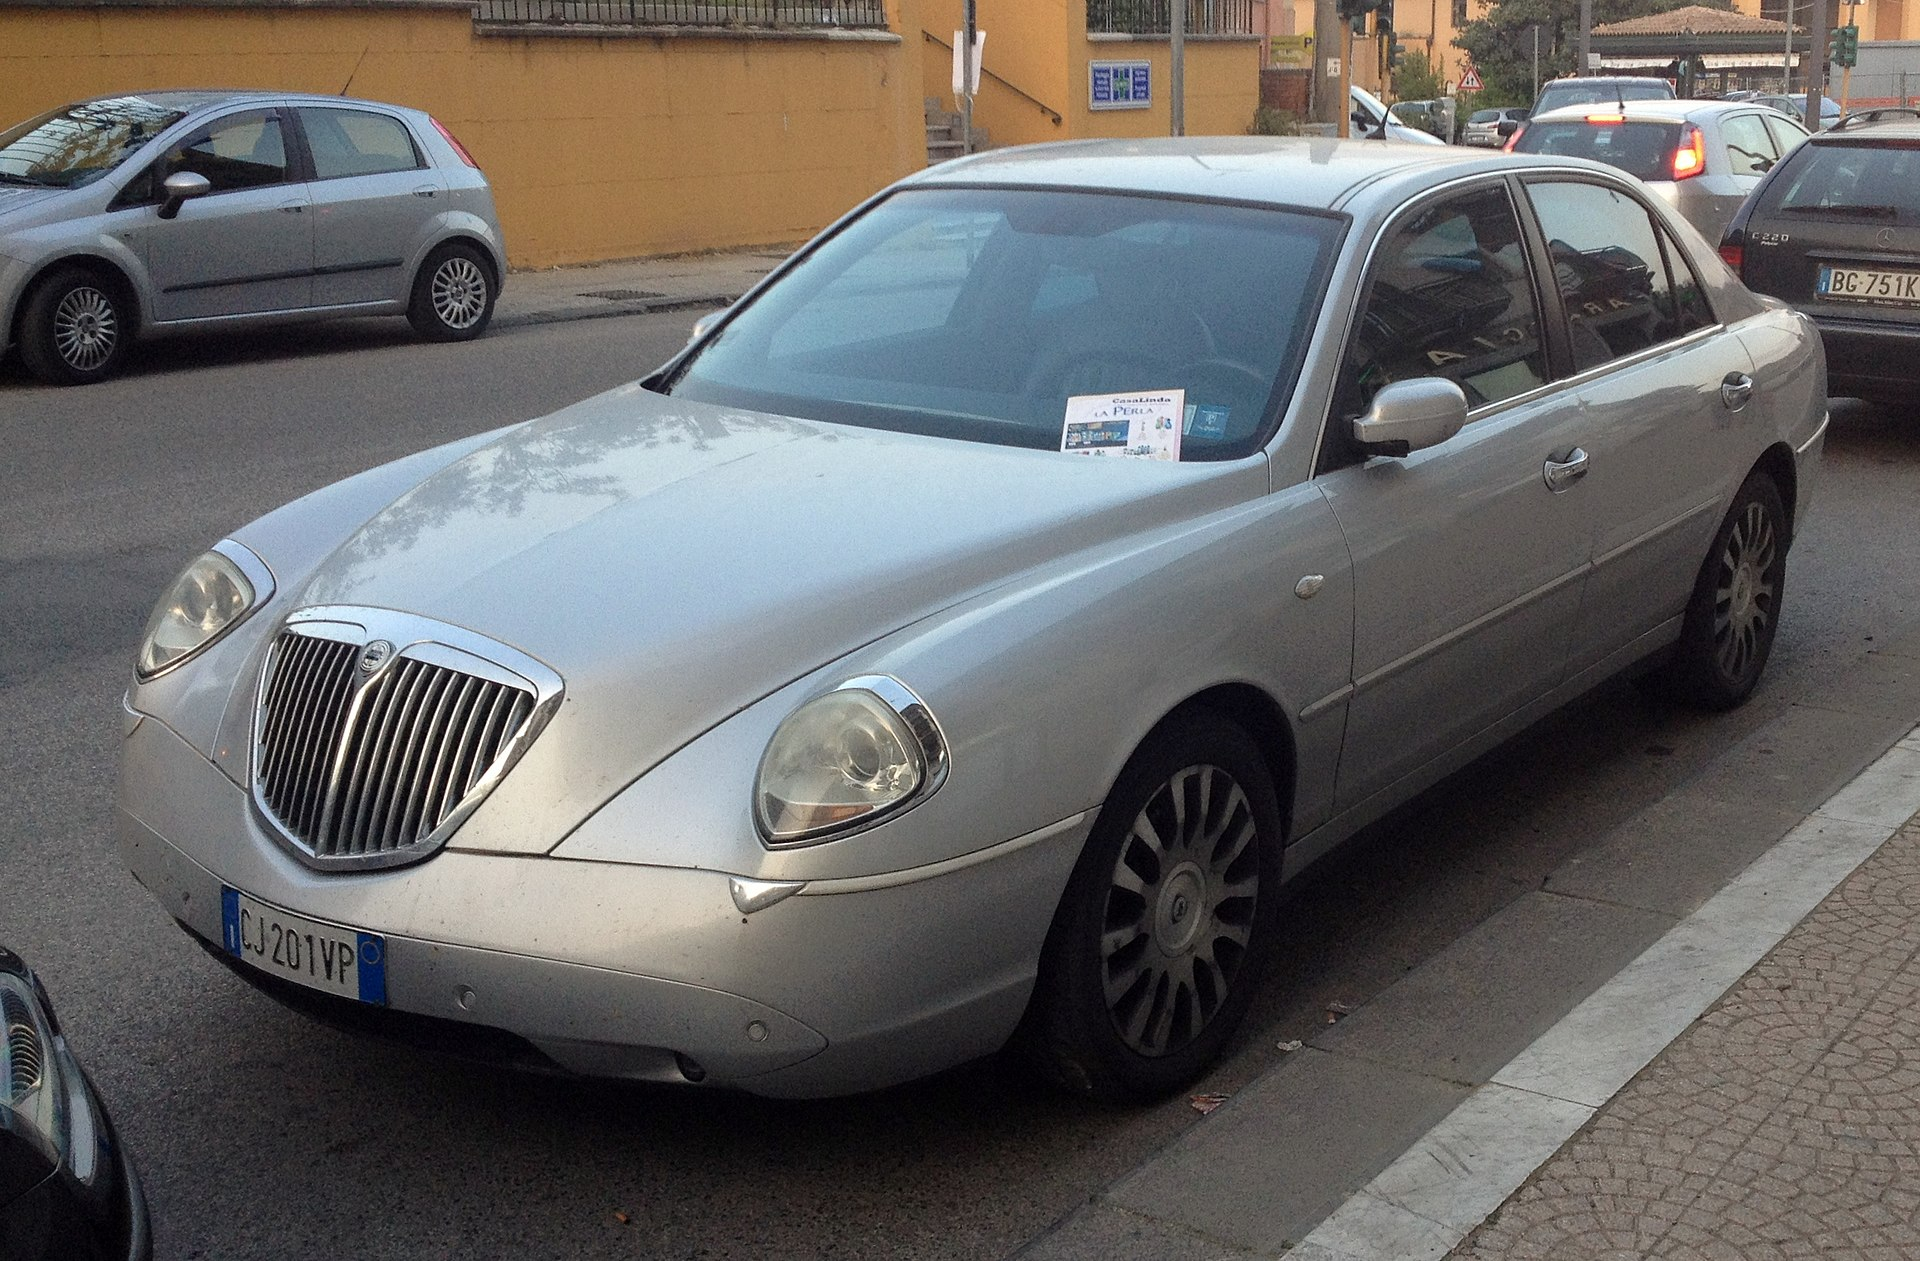 lancia thesis prices Lancia thesis new price having to write a essay for the non scientific community, don't understand the paper i'm meant to be basing it on myself.